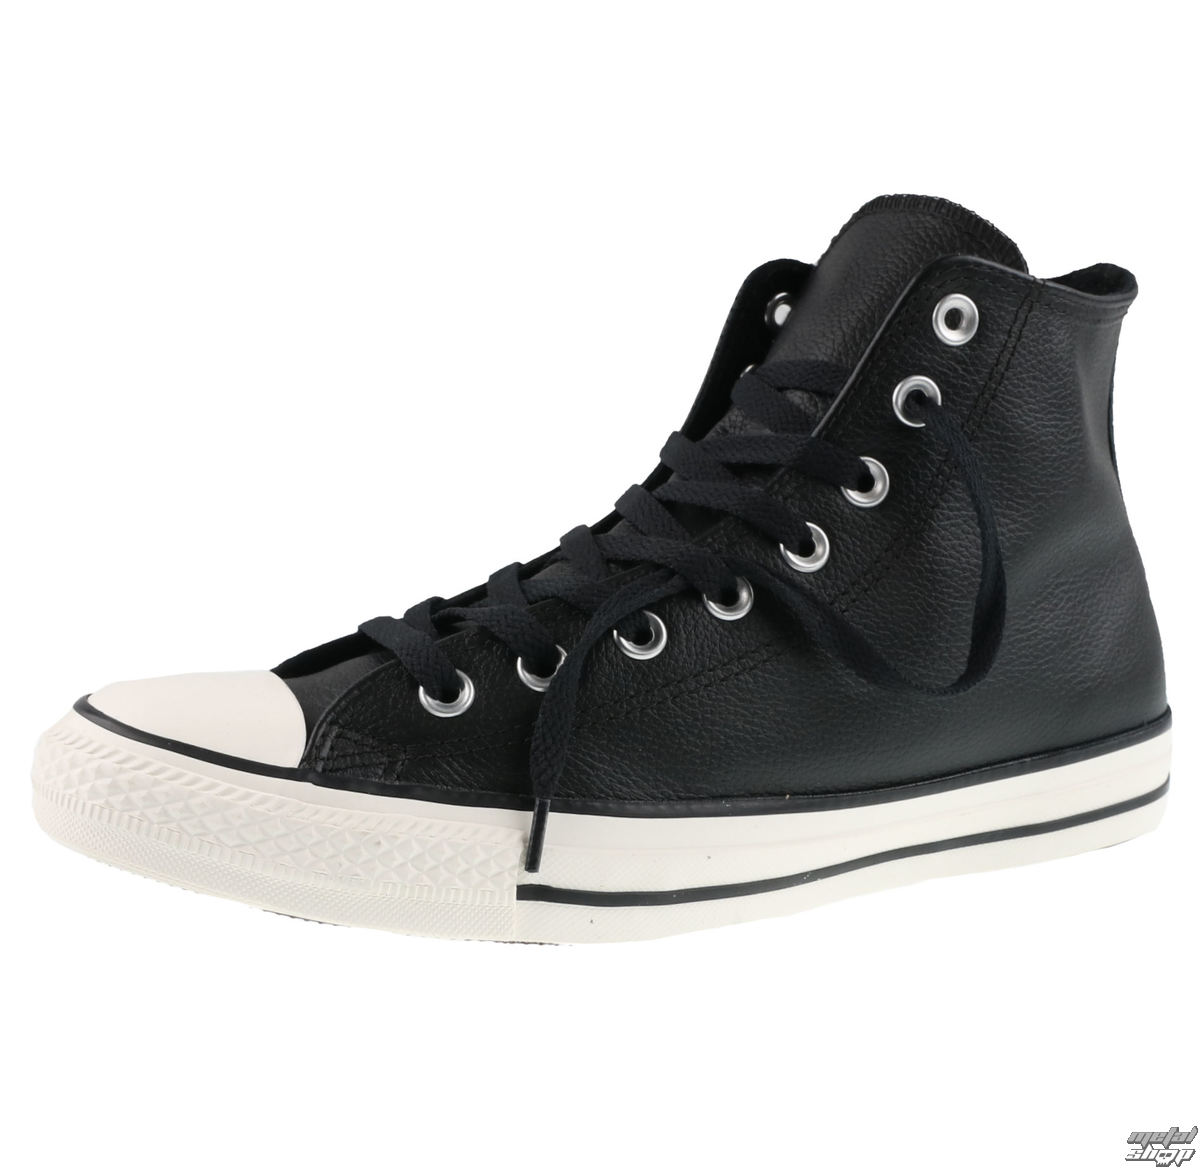 topánky CONVERSE - Chuck Taylor All Star - C157468